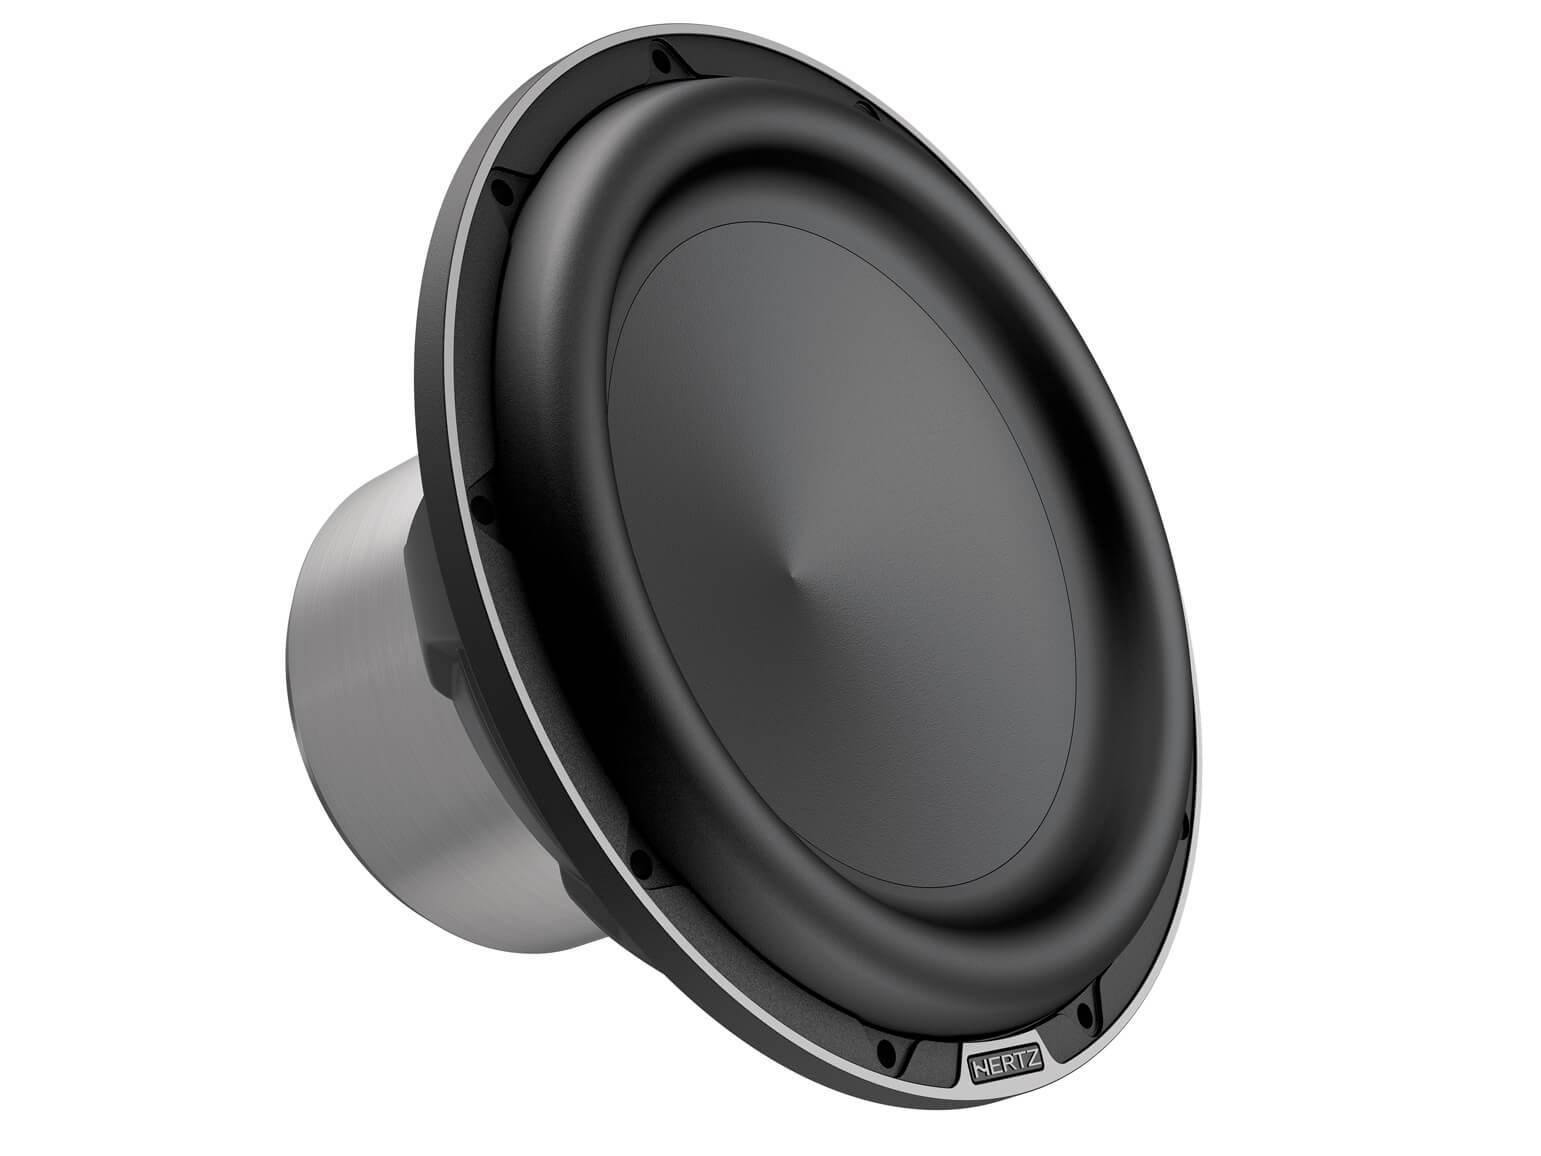 Hertz Mille Legend ML 2500.3 - Subwoofer